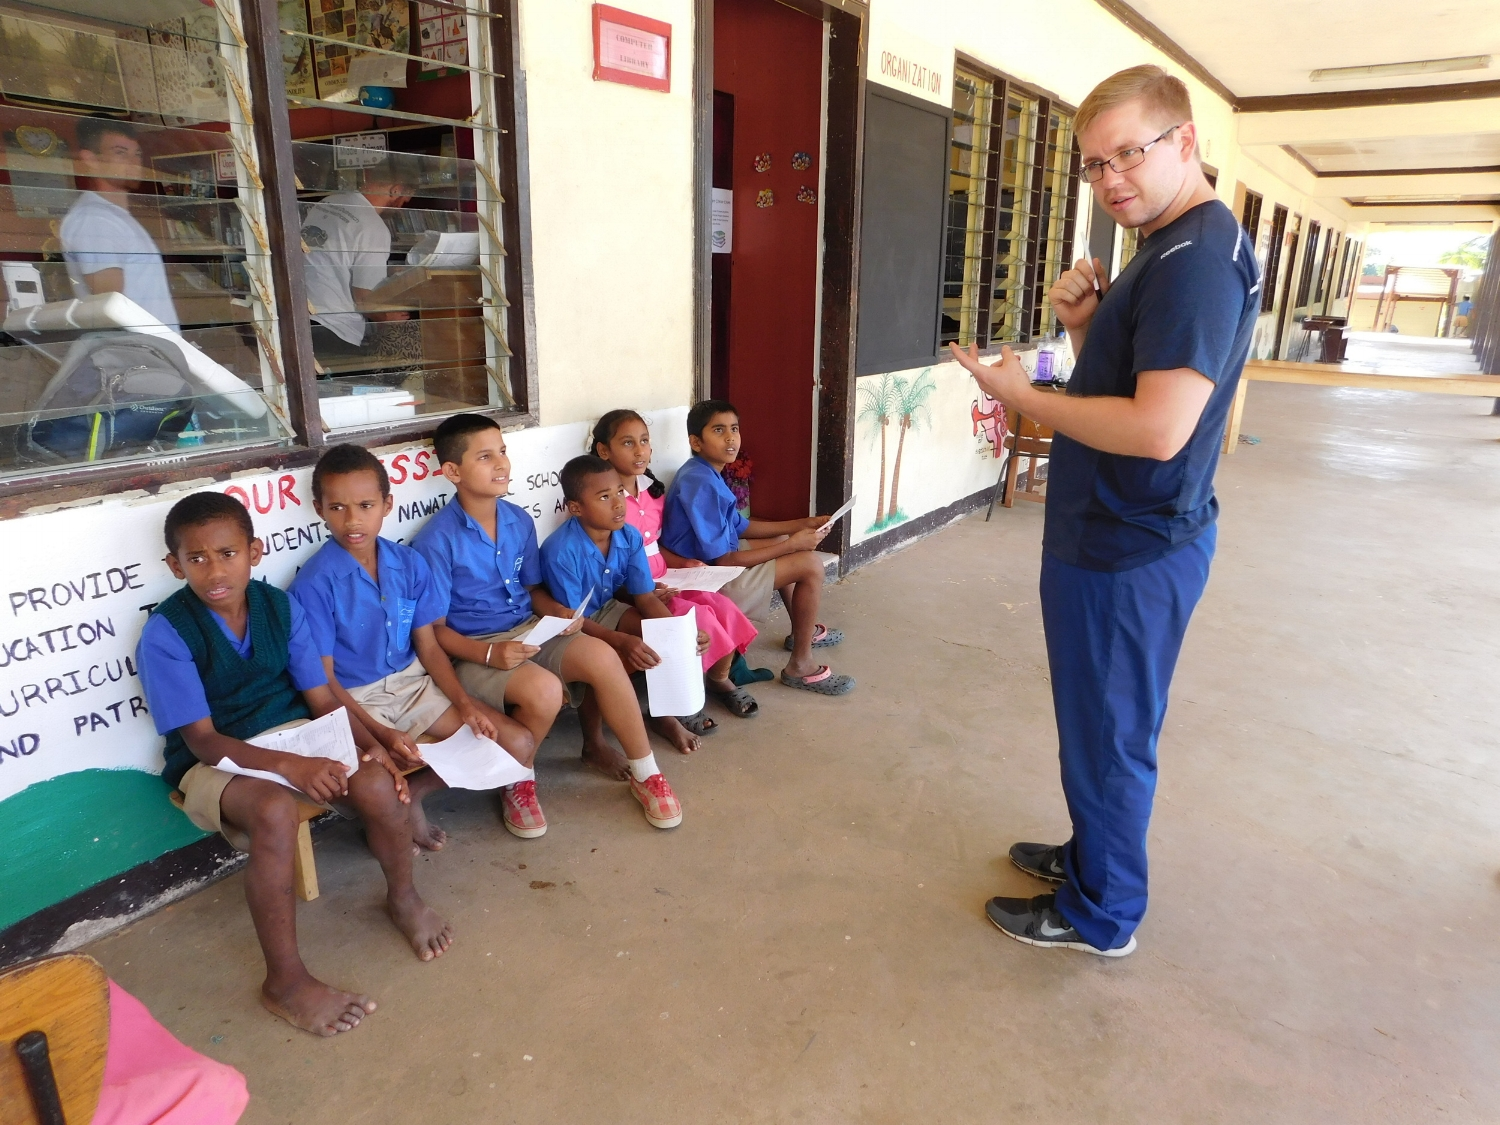 Dr. Alex Wolfe teaching a group of students